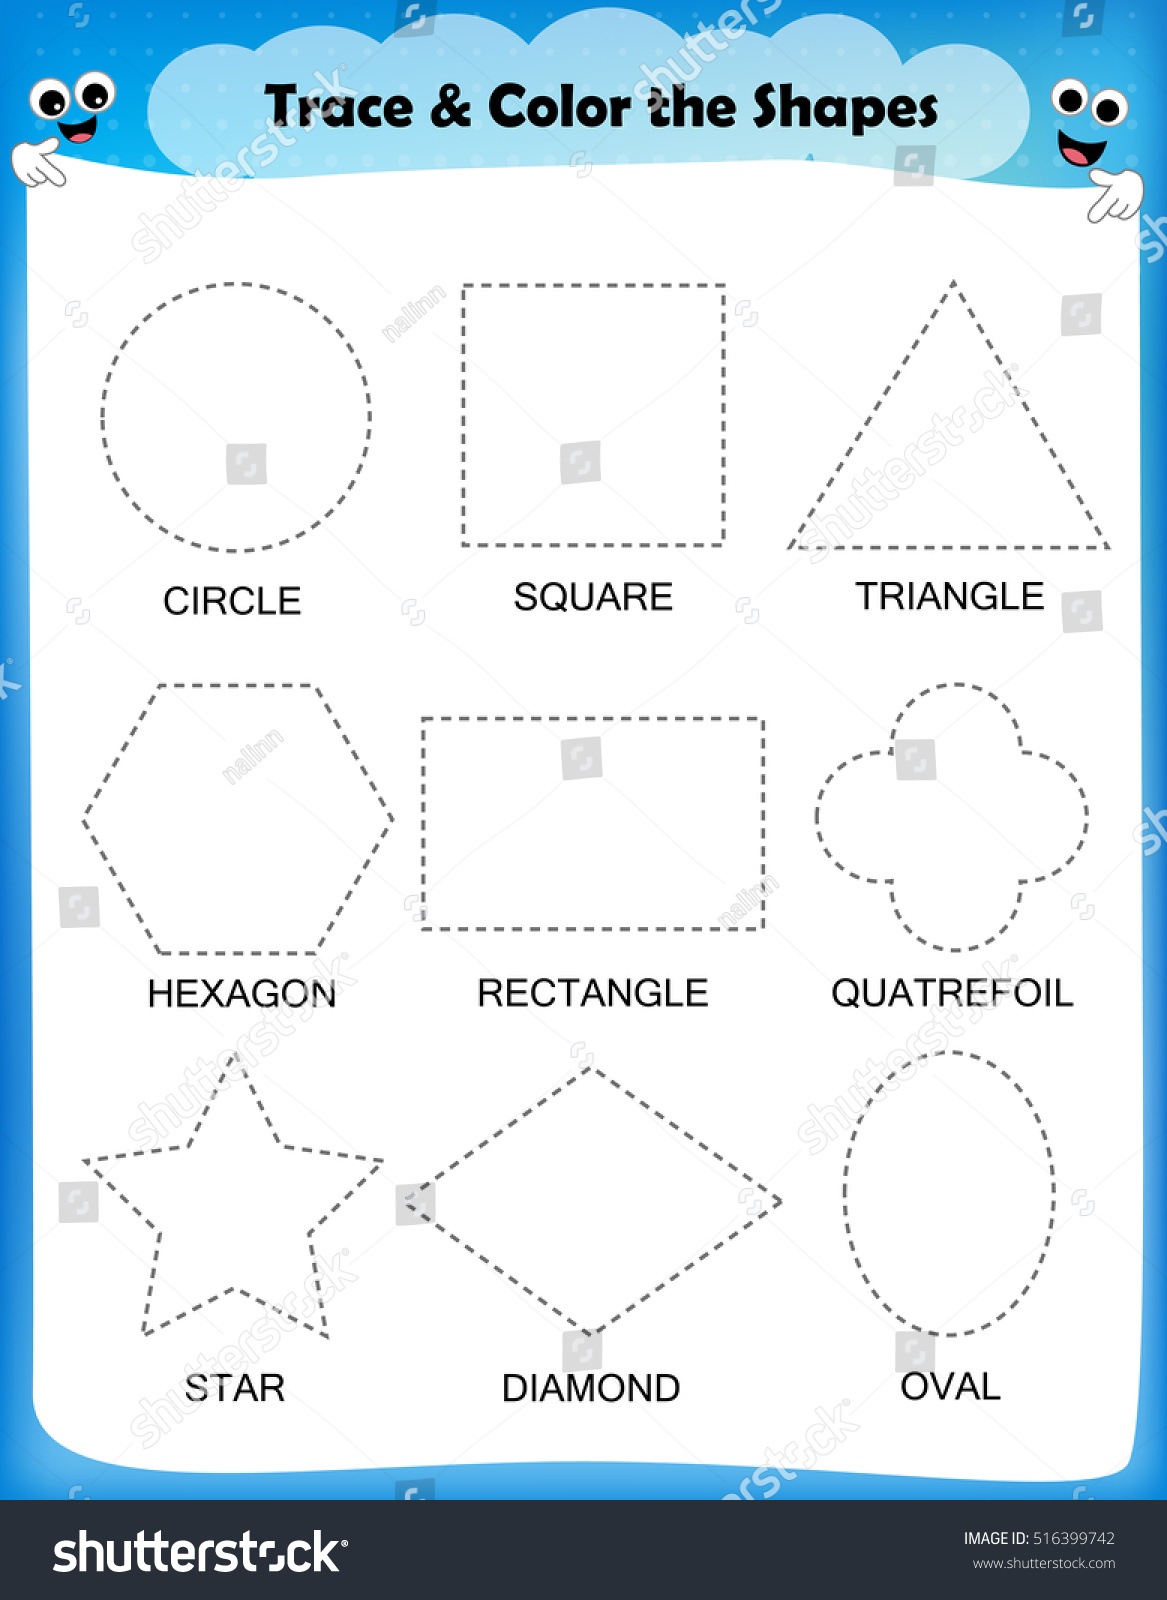 Coloring shapes worksheet - Preschool Worksheet Trace The Shapes And Color Basic Writing And Coloring Practice